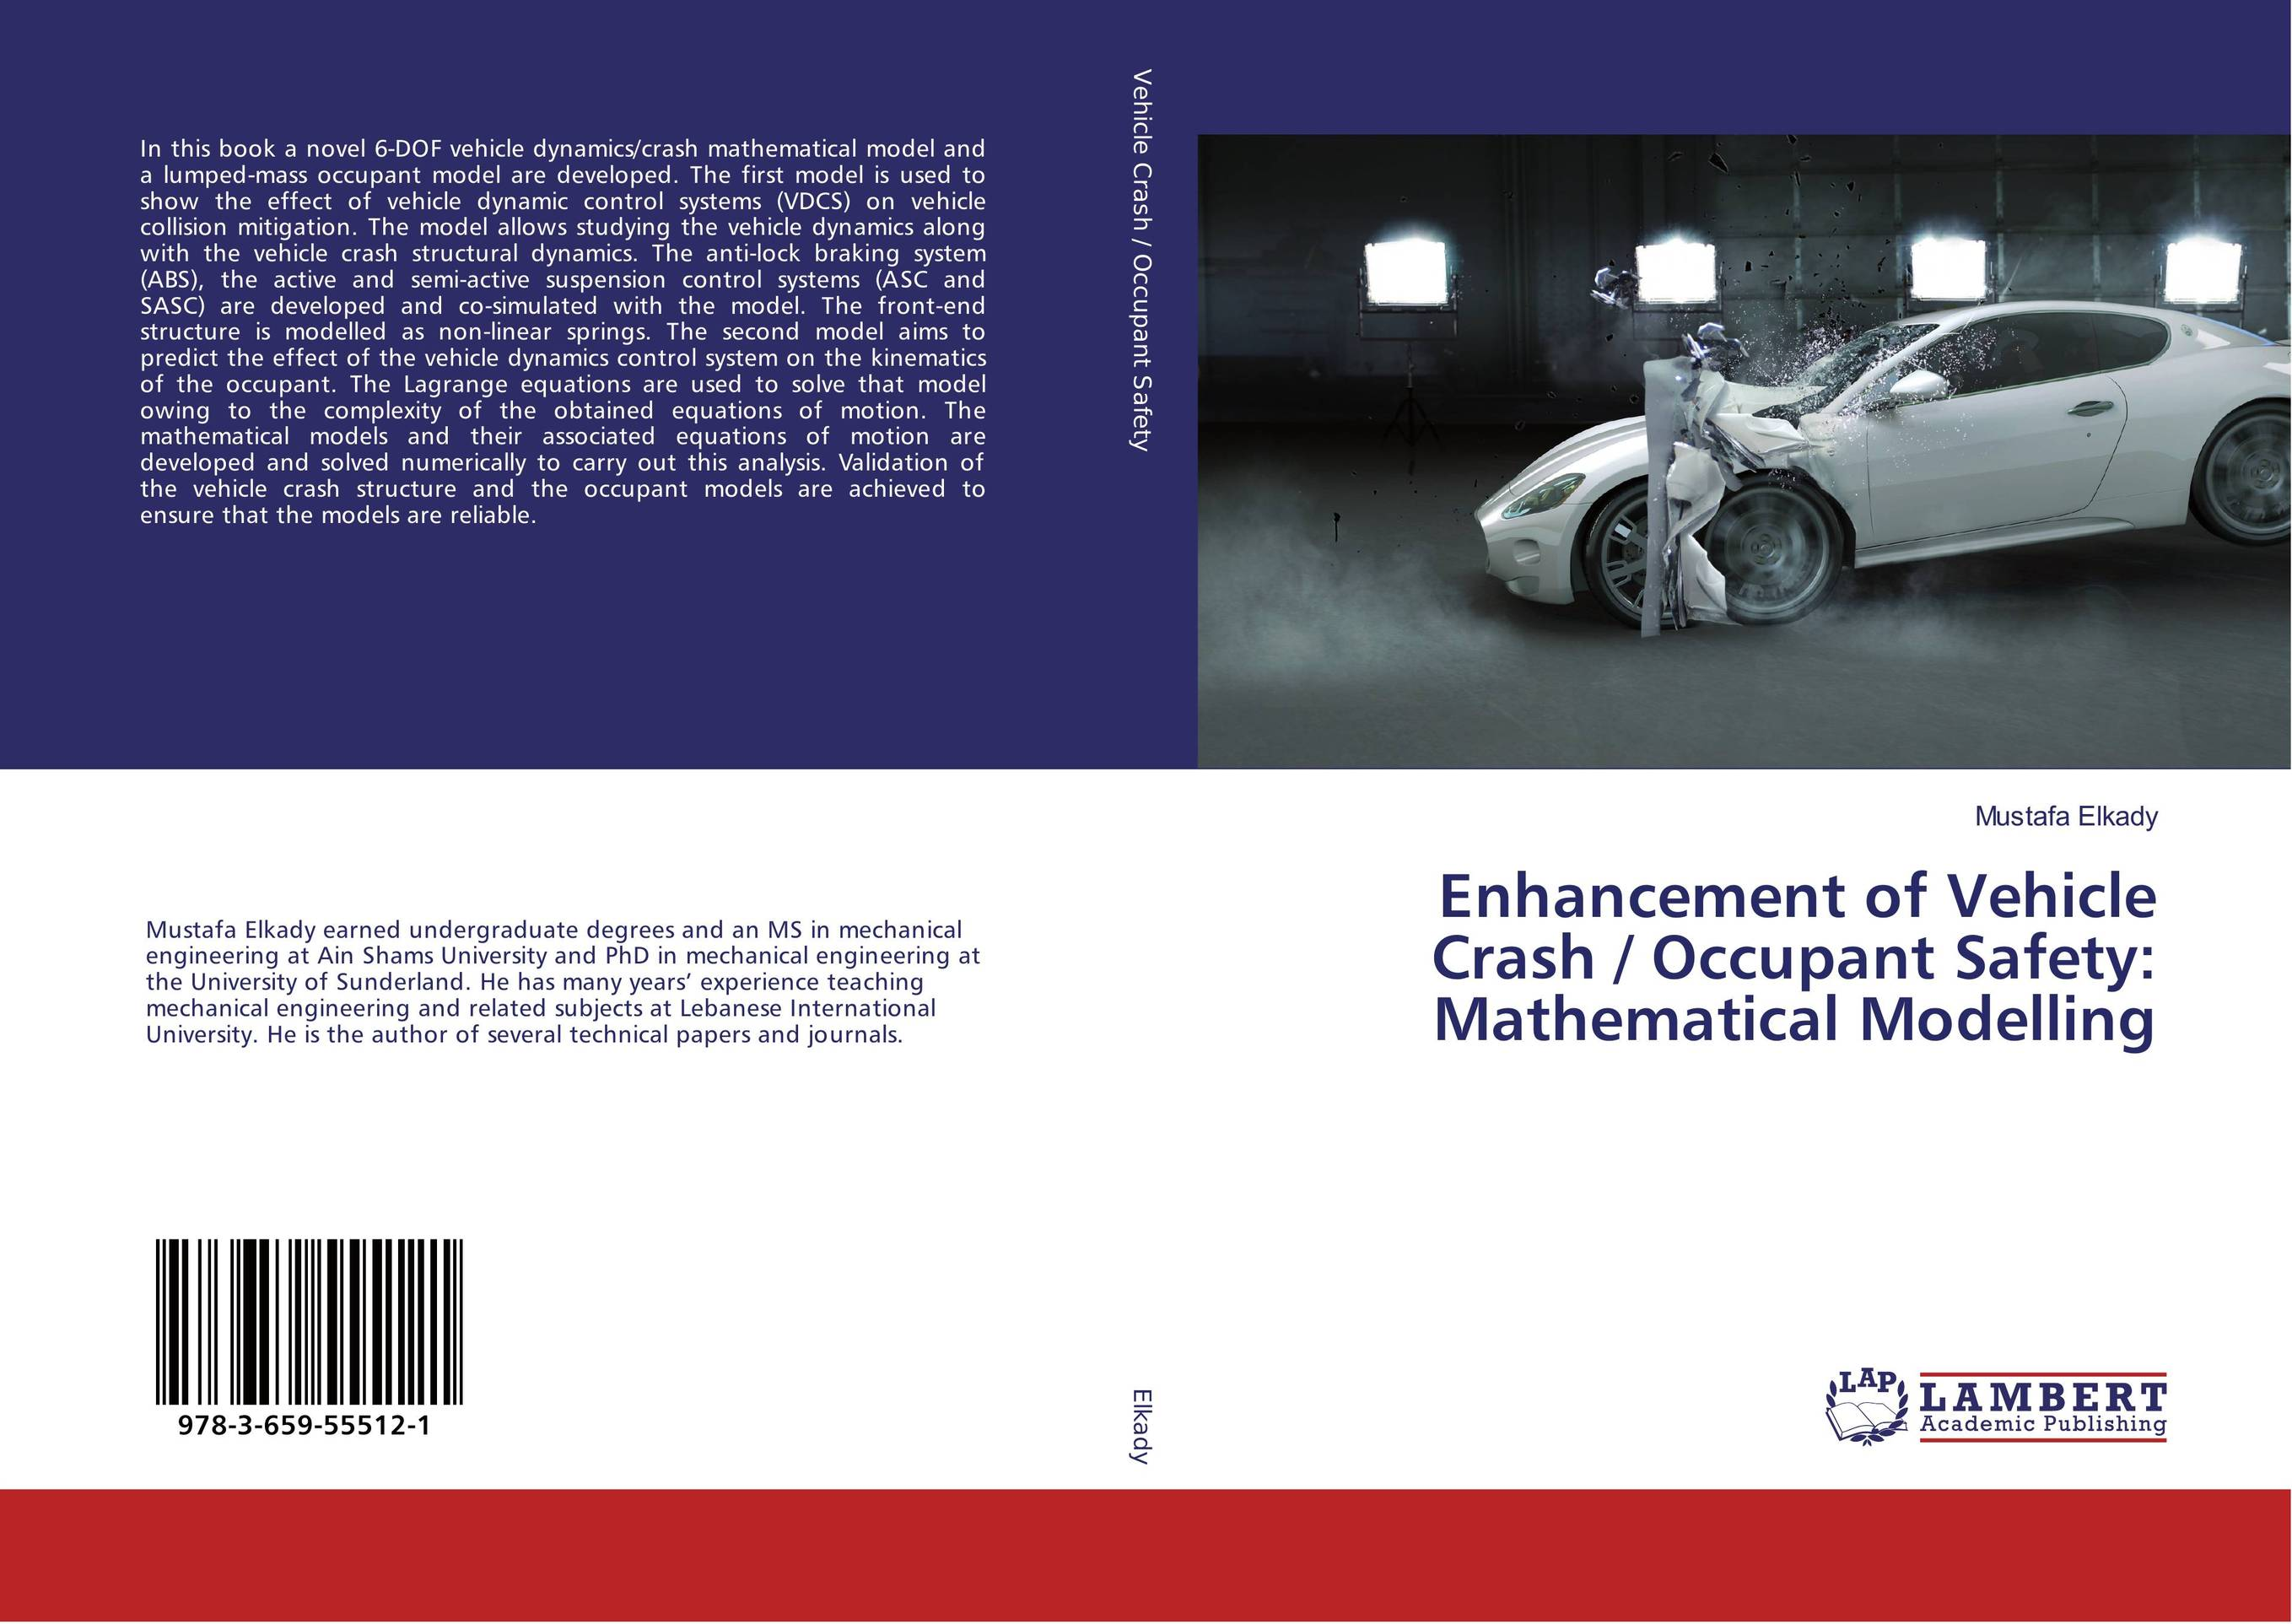 Enhancement of Vehicle Crash / Occupant Safety: Mathematical Modelling handbook of mathematical fluid dynamics 1